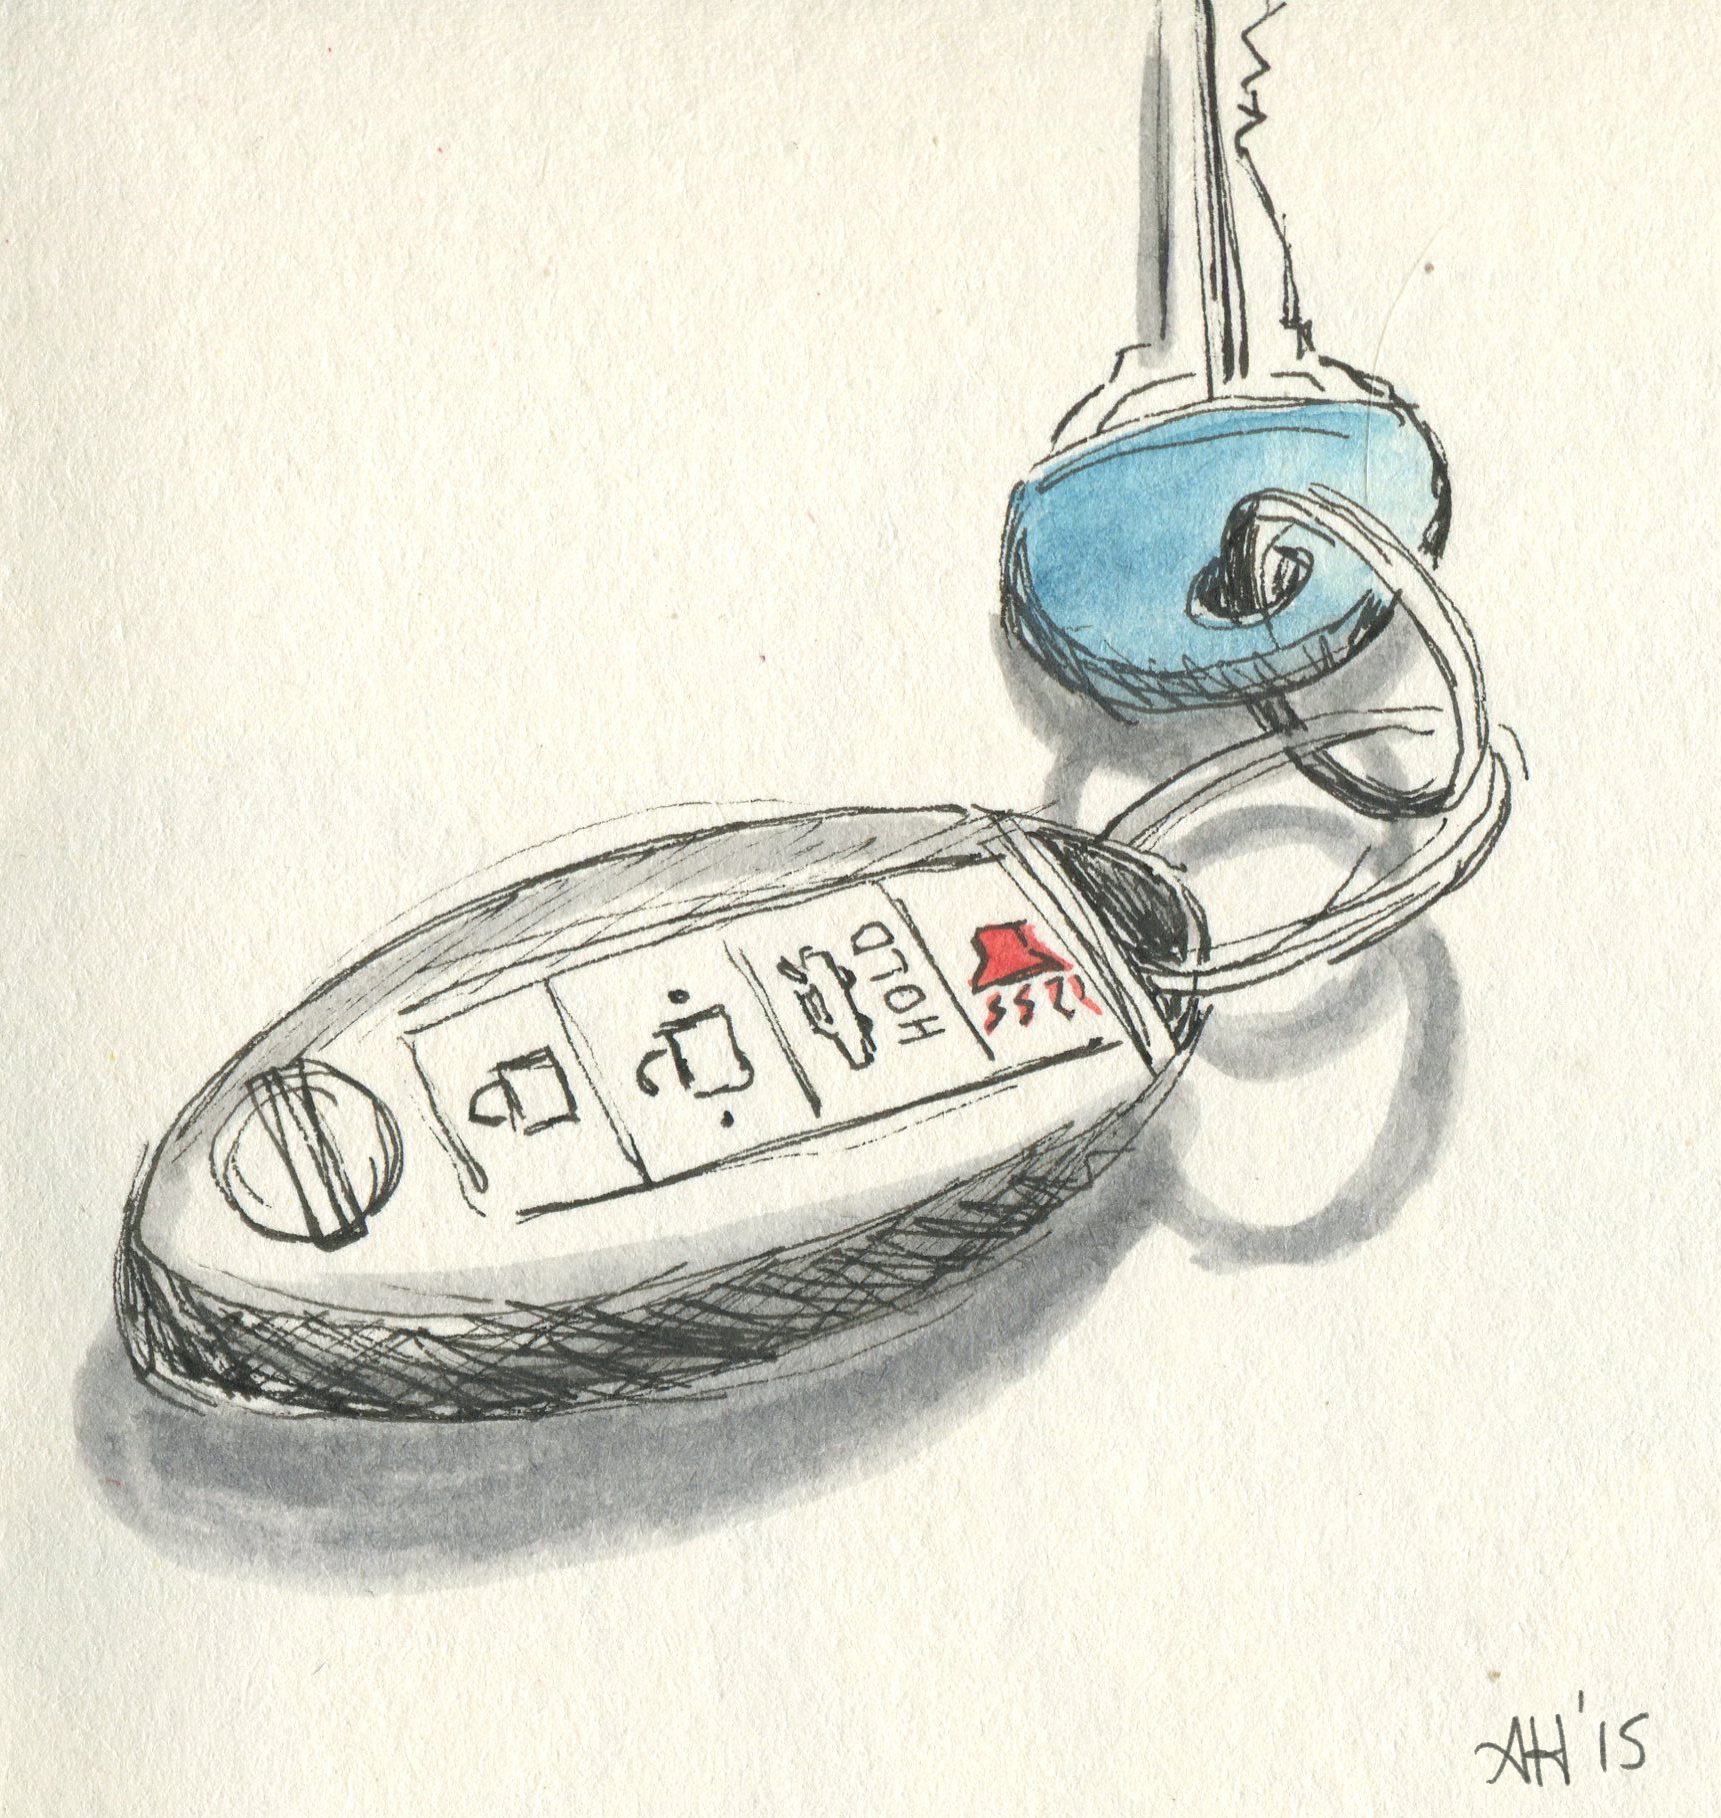 a sketch of car keys by alleanna harris